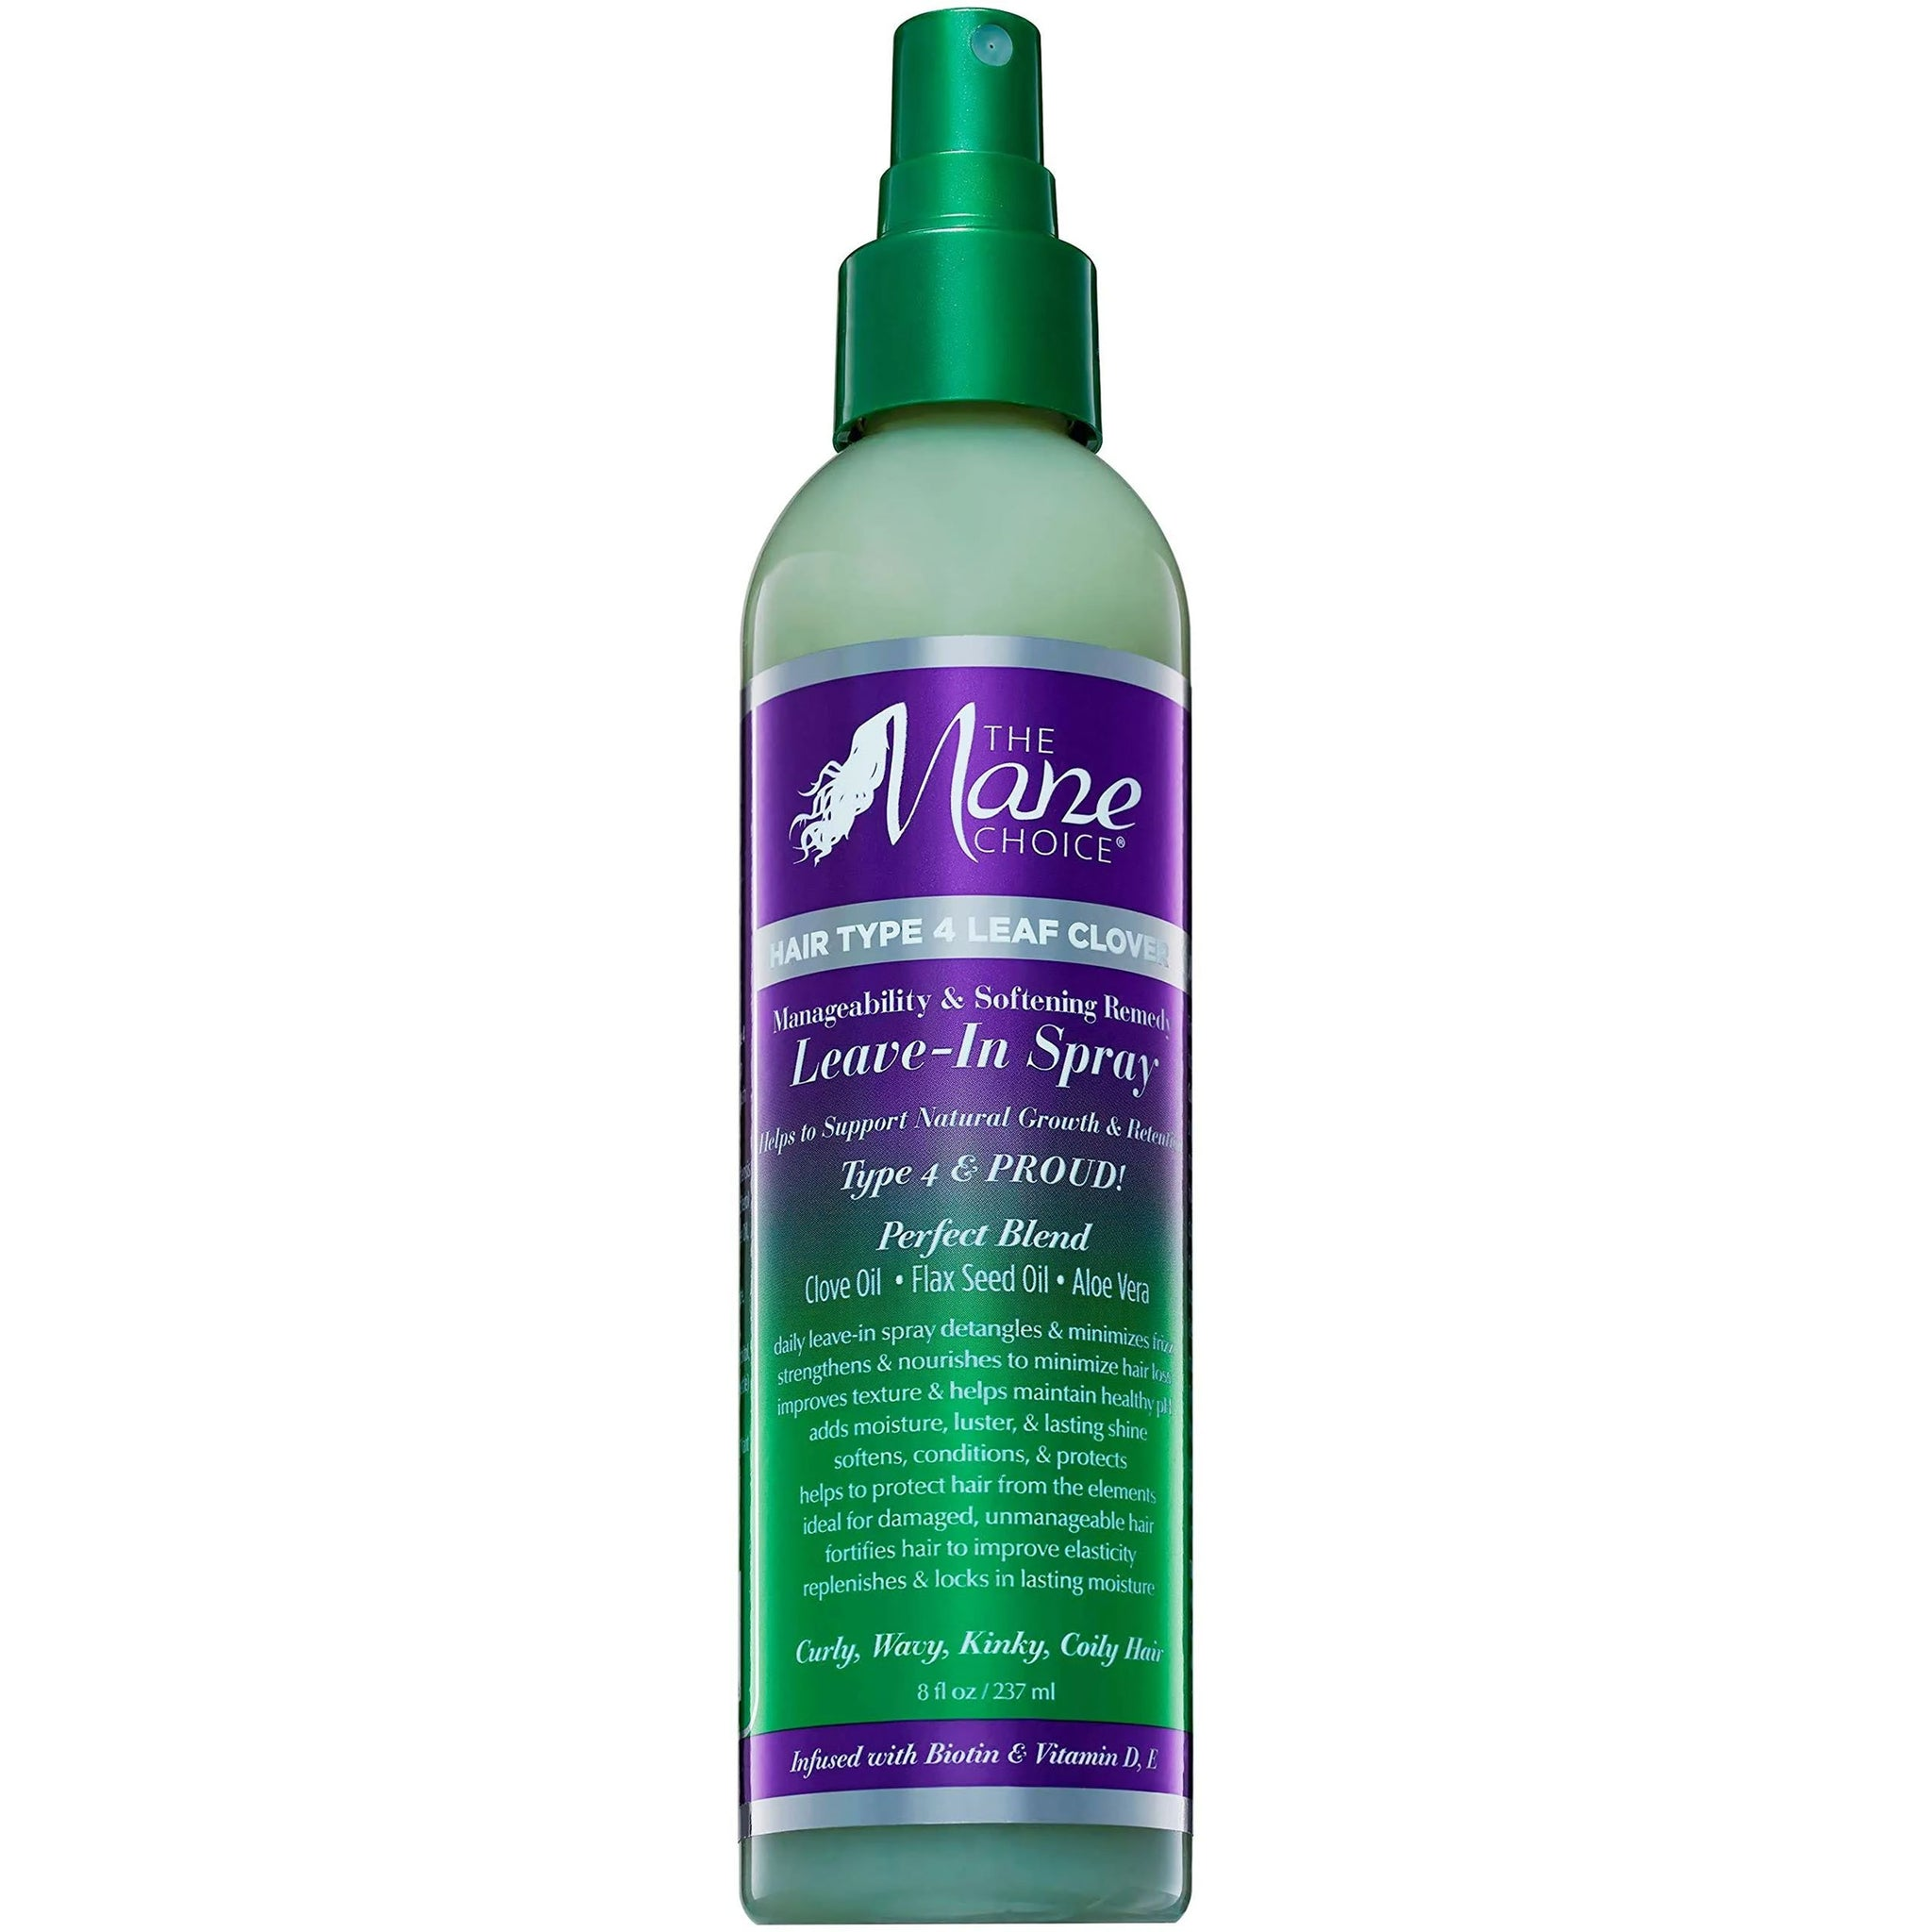 Mane Choice Hair Type 4 Leaf Clover Leave In Spray 00584 8oz